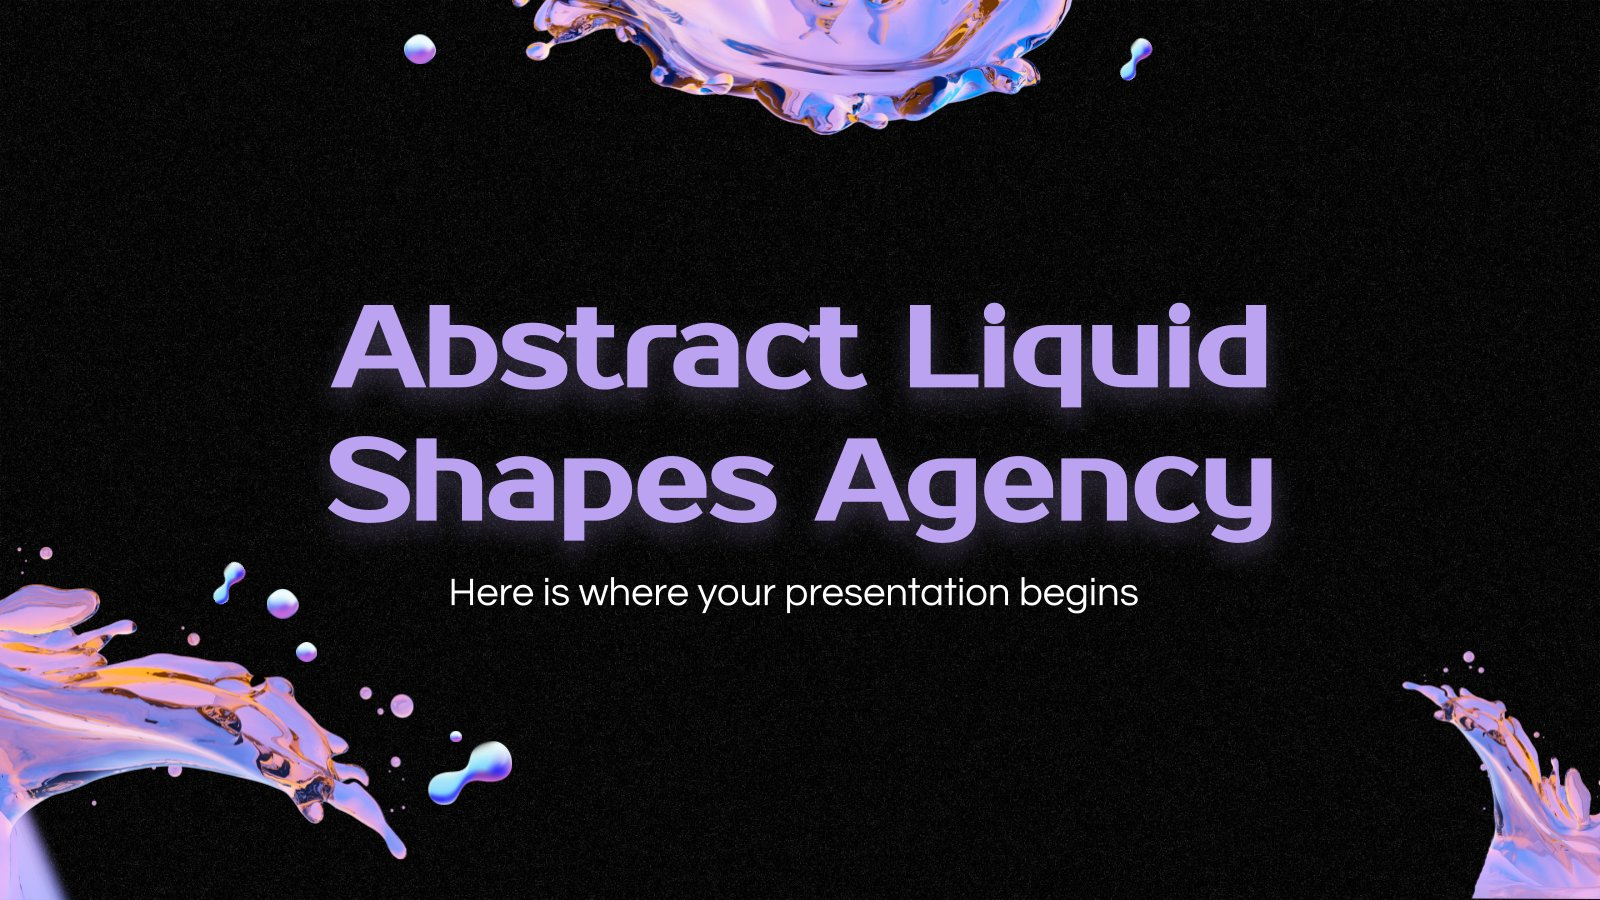 Abstract Liquid Shapes Agency presentation template